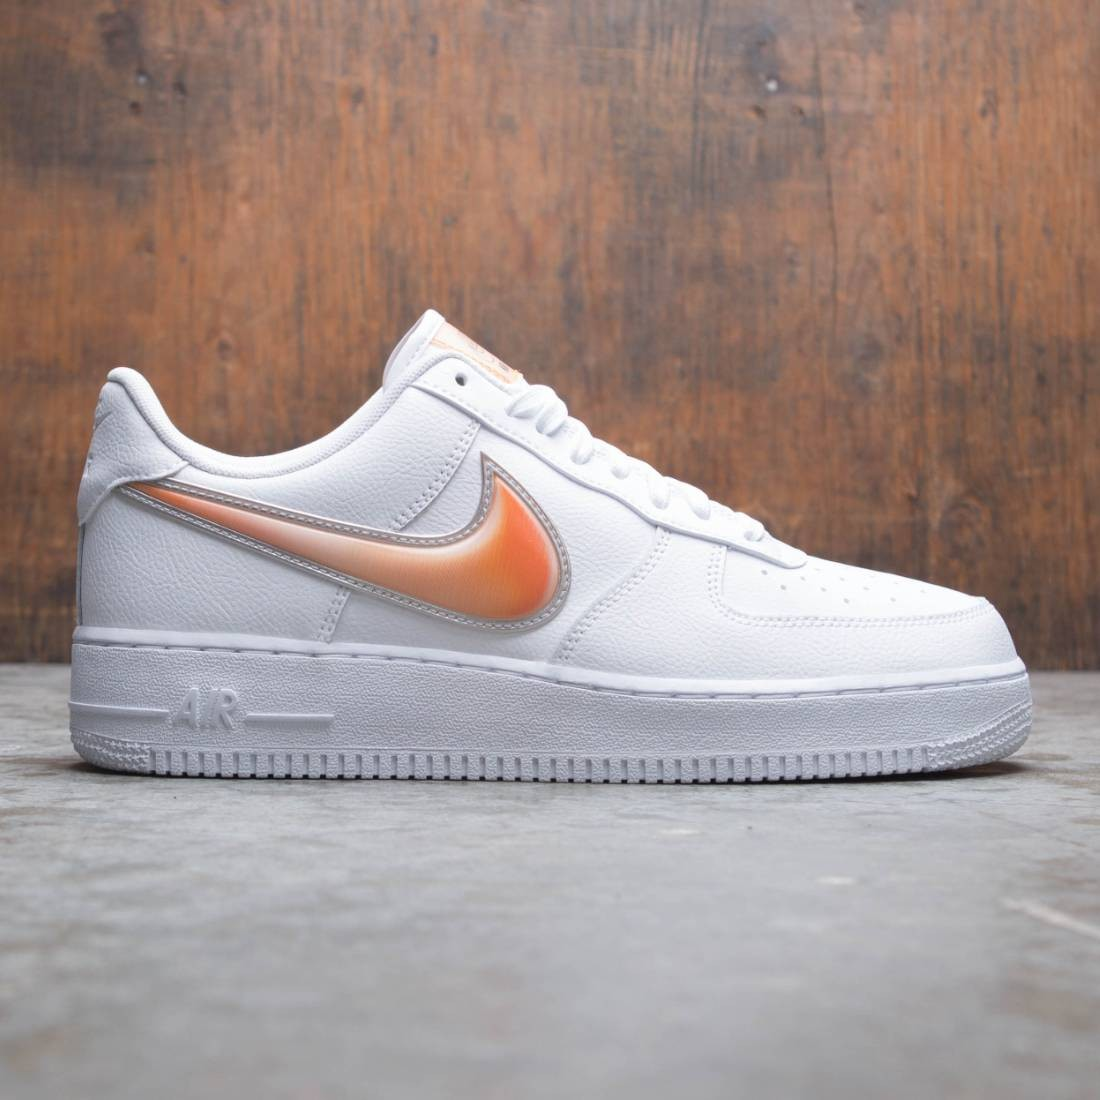 Nike Air Force 1 '07 Orange Peel Available Now